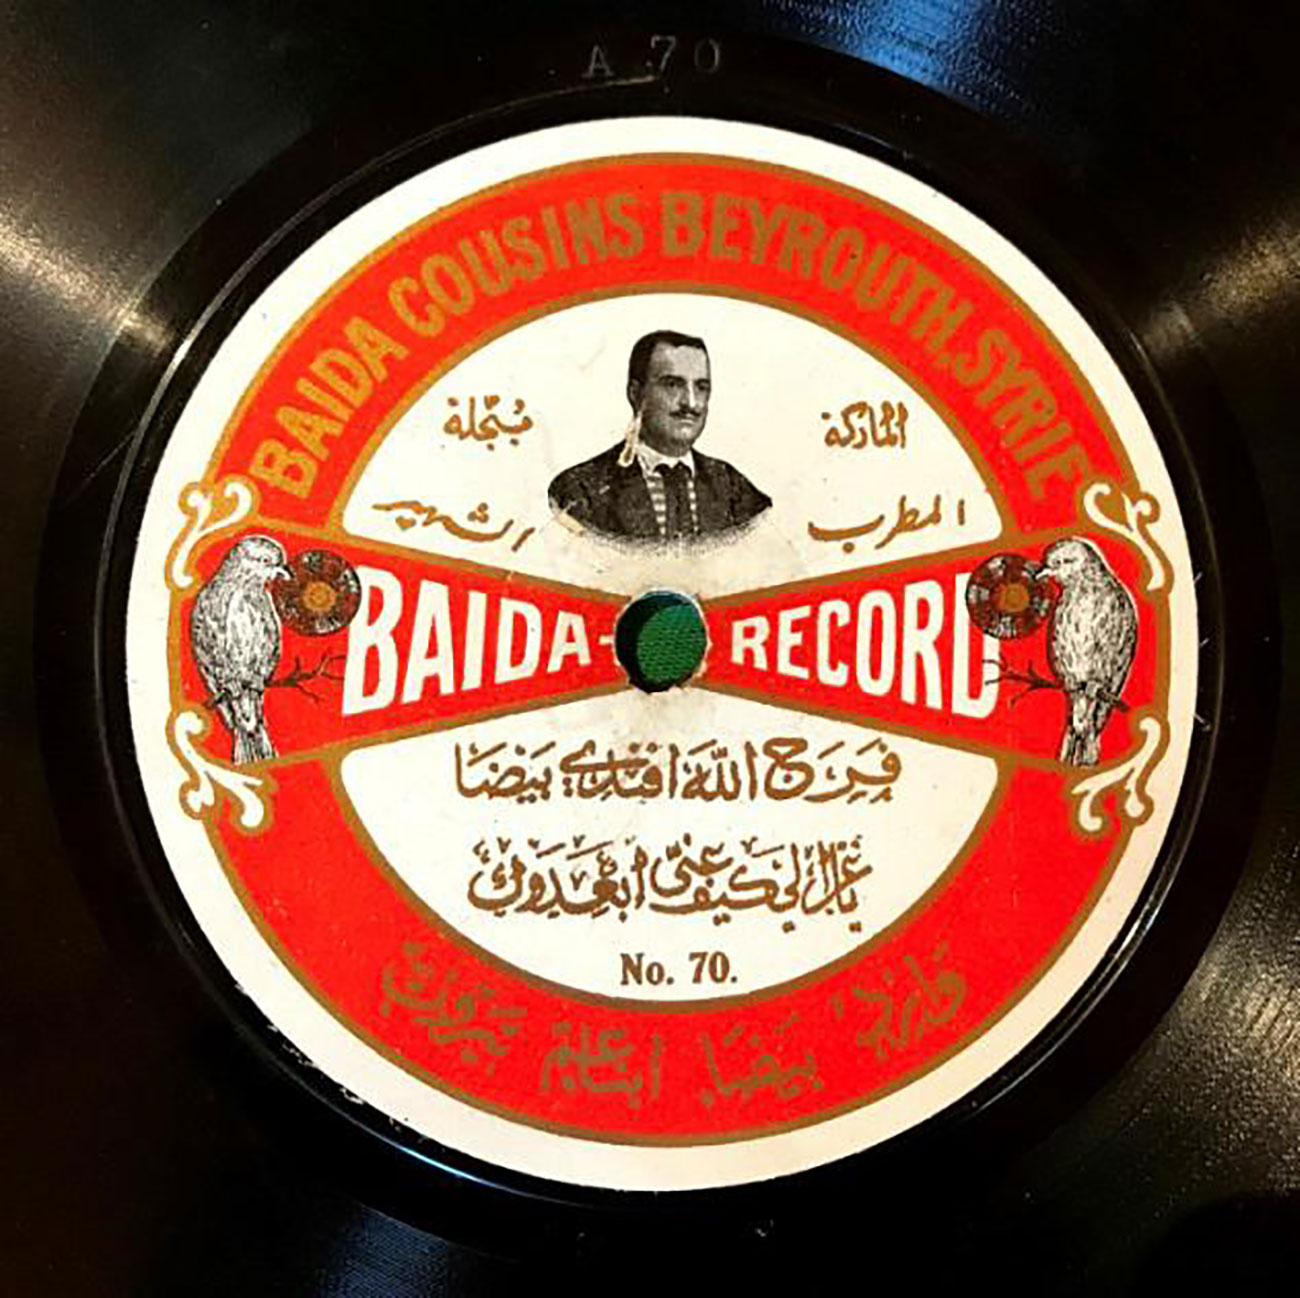 Farajallah Baida (Liban) Ya Ghazali Kayfa Anni Ab'aduk / Ma gazelle comment t'ont-ils éloigné de moi 1907 Baidaphone, 78 tours AMAR – Fondation for Arab Music Archiving & Research, Beirut © AMAR